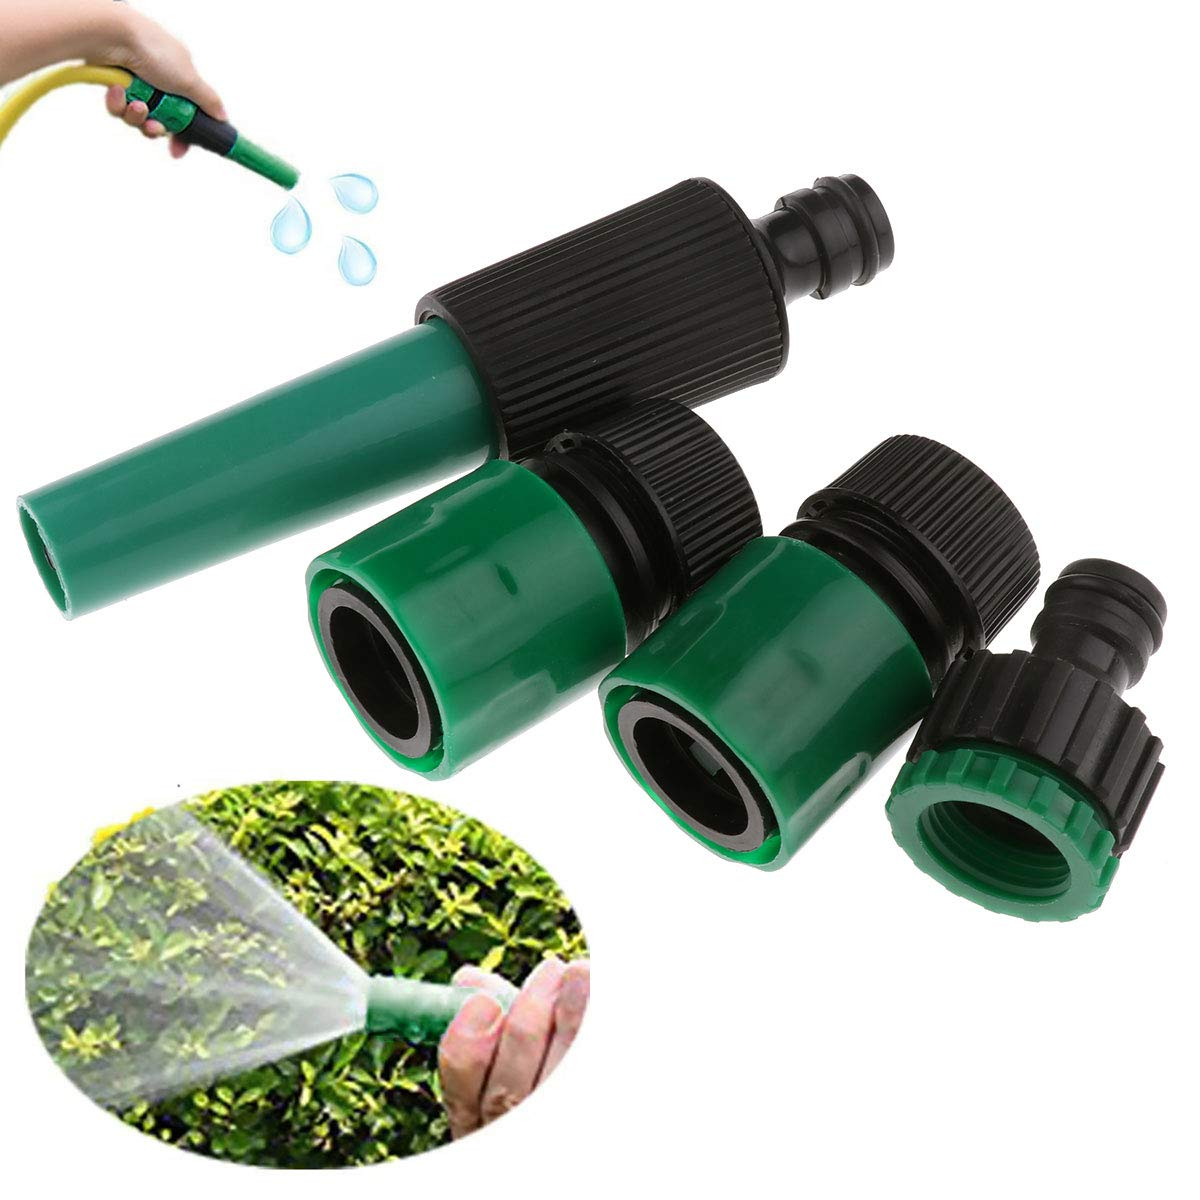 CHICTRY Garden Sprinkler Sprayer Nozzle Green High Pressure Plant Watering Devices Irrigation System for Lawn Gardening Car Washing and Pet Bathing